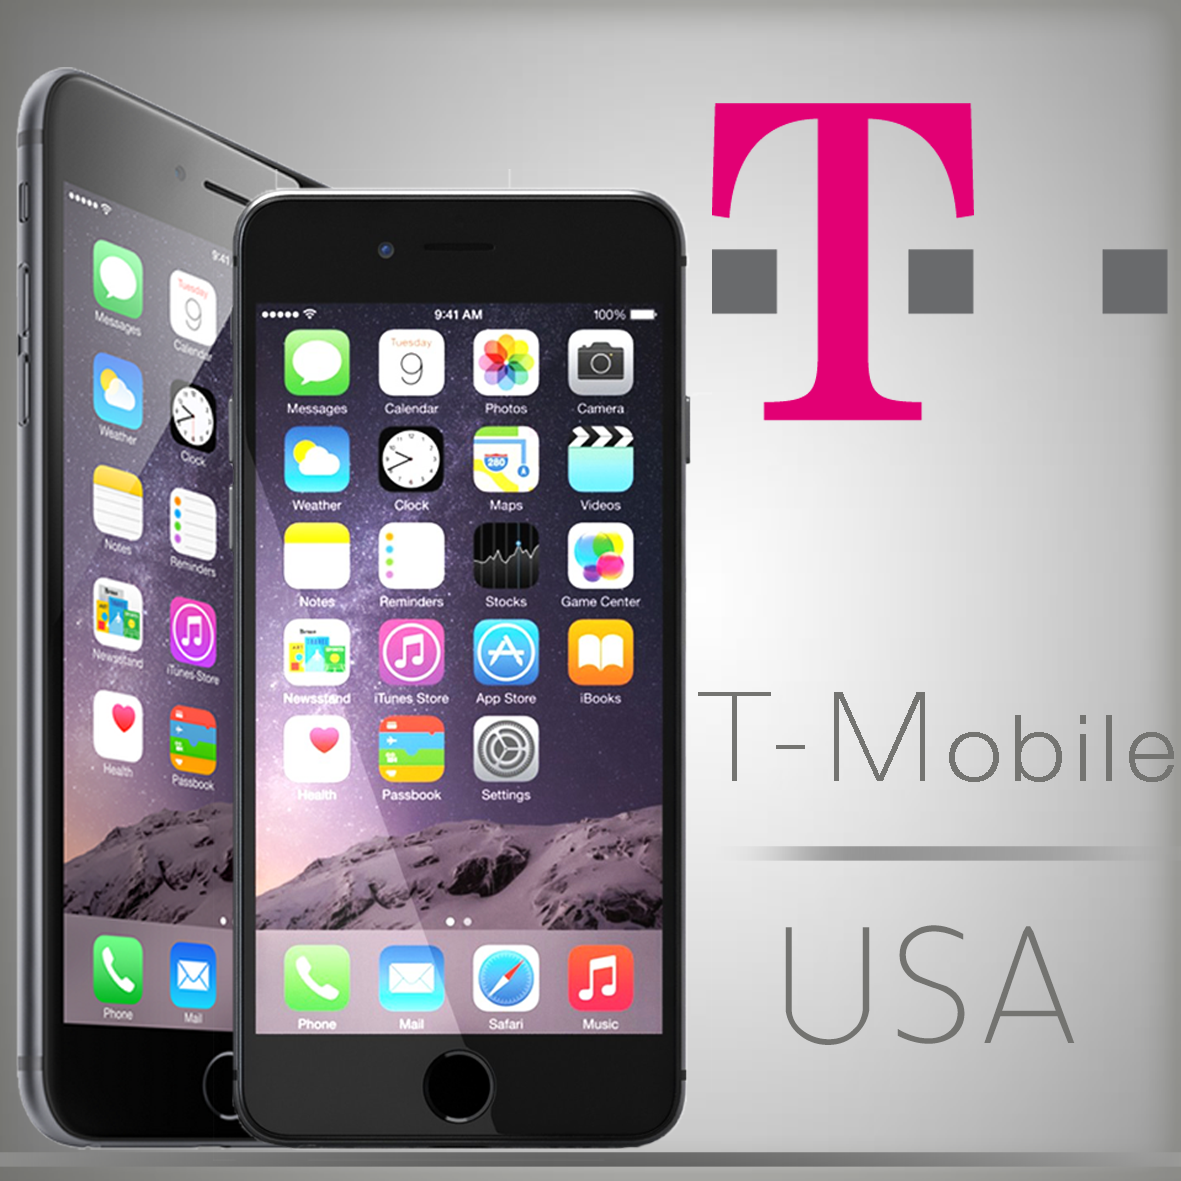 T Mobile USA - Tv 4.0. Europa alla conquista del mercato USA: T-Mobile (Deutsche Telekom) acquista Layer3 Tv. Target: quote mercato di DirecTV Now, YouTube TV e Sling TV